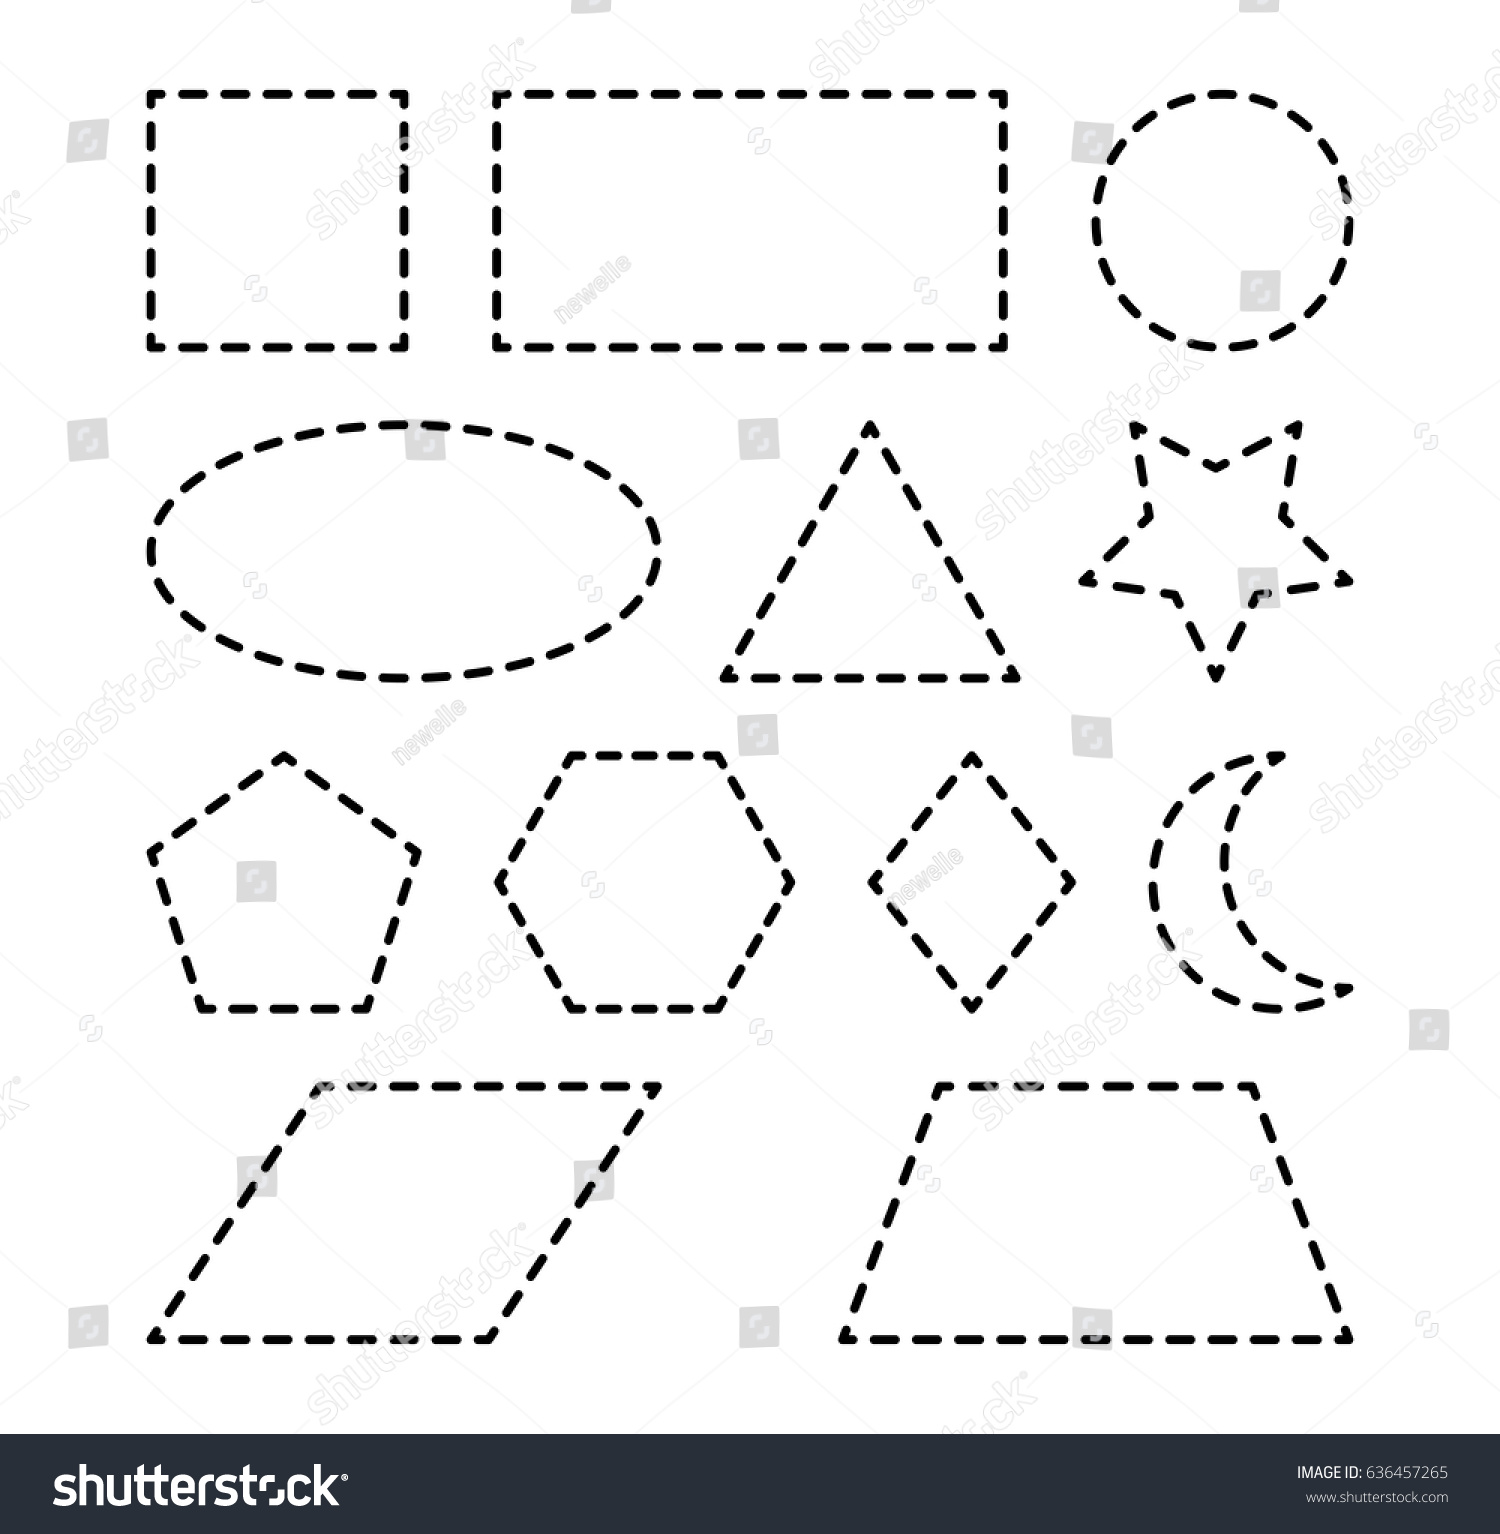 Geometric Shapes Square Circle Oval Triangle Stock Vector